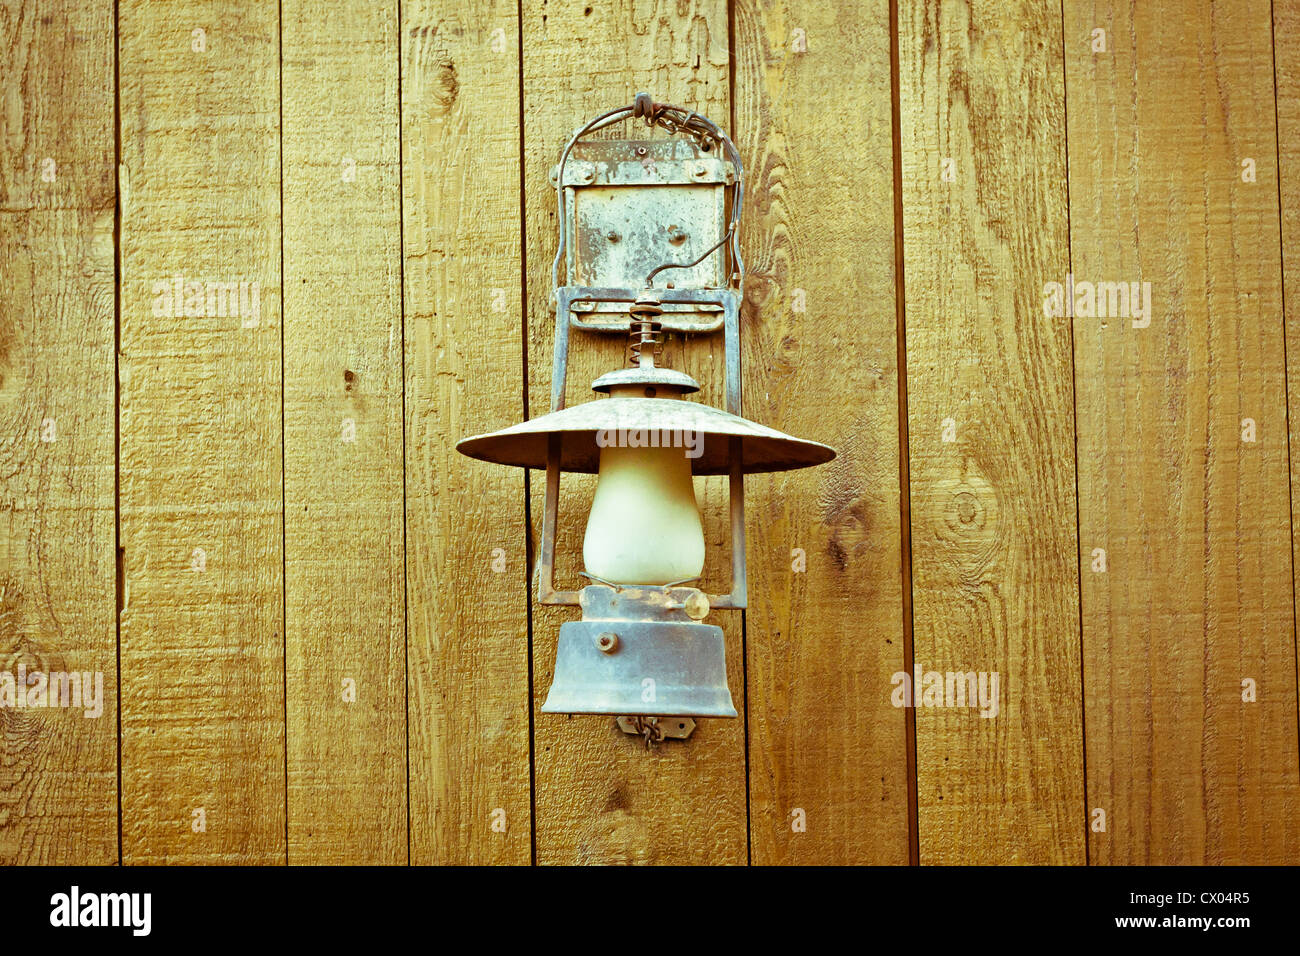 A nice vintage paraffin lamp mounted on a wooden wall - Stock Image